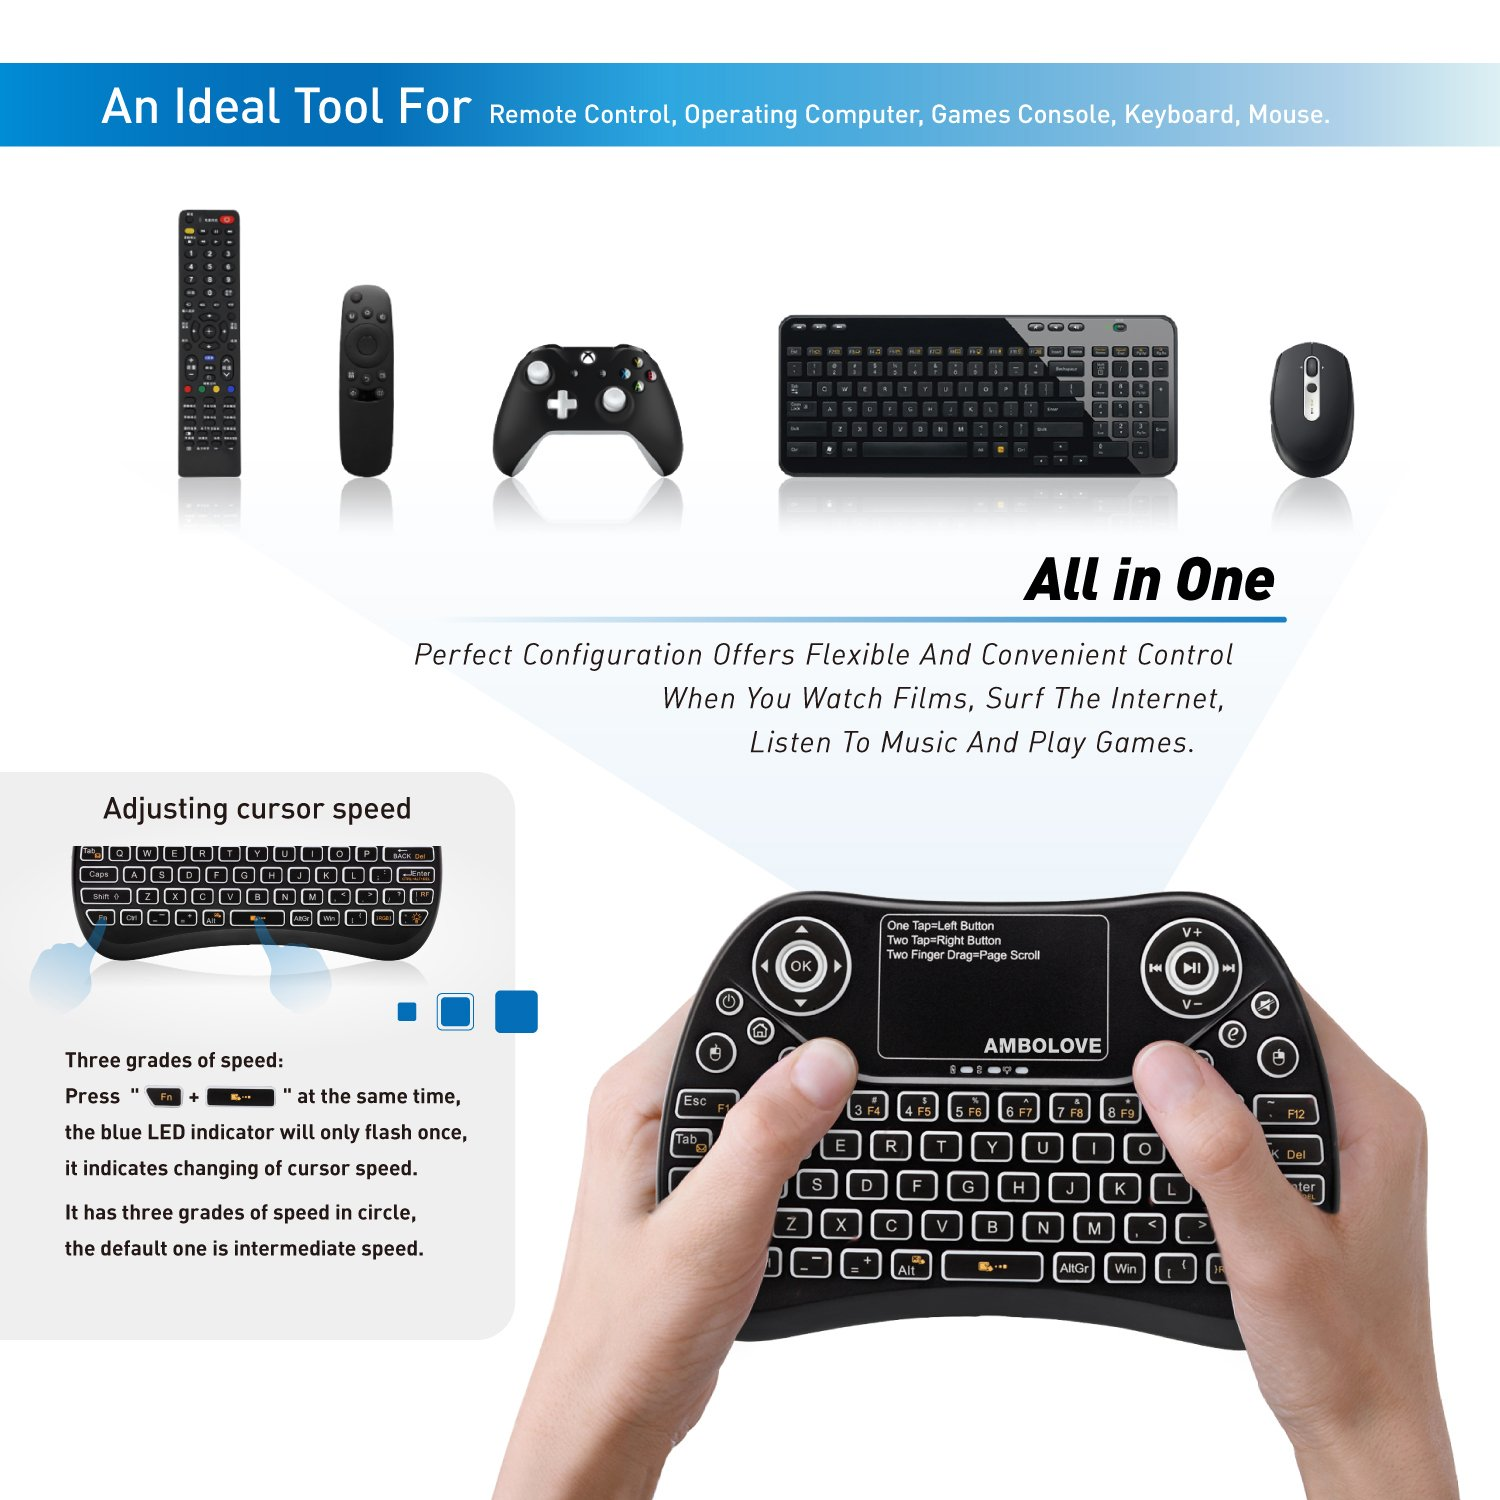 Amazon.com: Wireless Mini Keyboard with Touchpad Mouse and Multimedia Keys,  2.4GHZ Portable USB Rechargable Li-ion Battery Android Remote Keyboard  Support ...